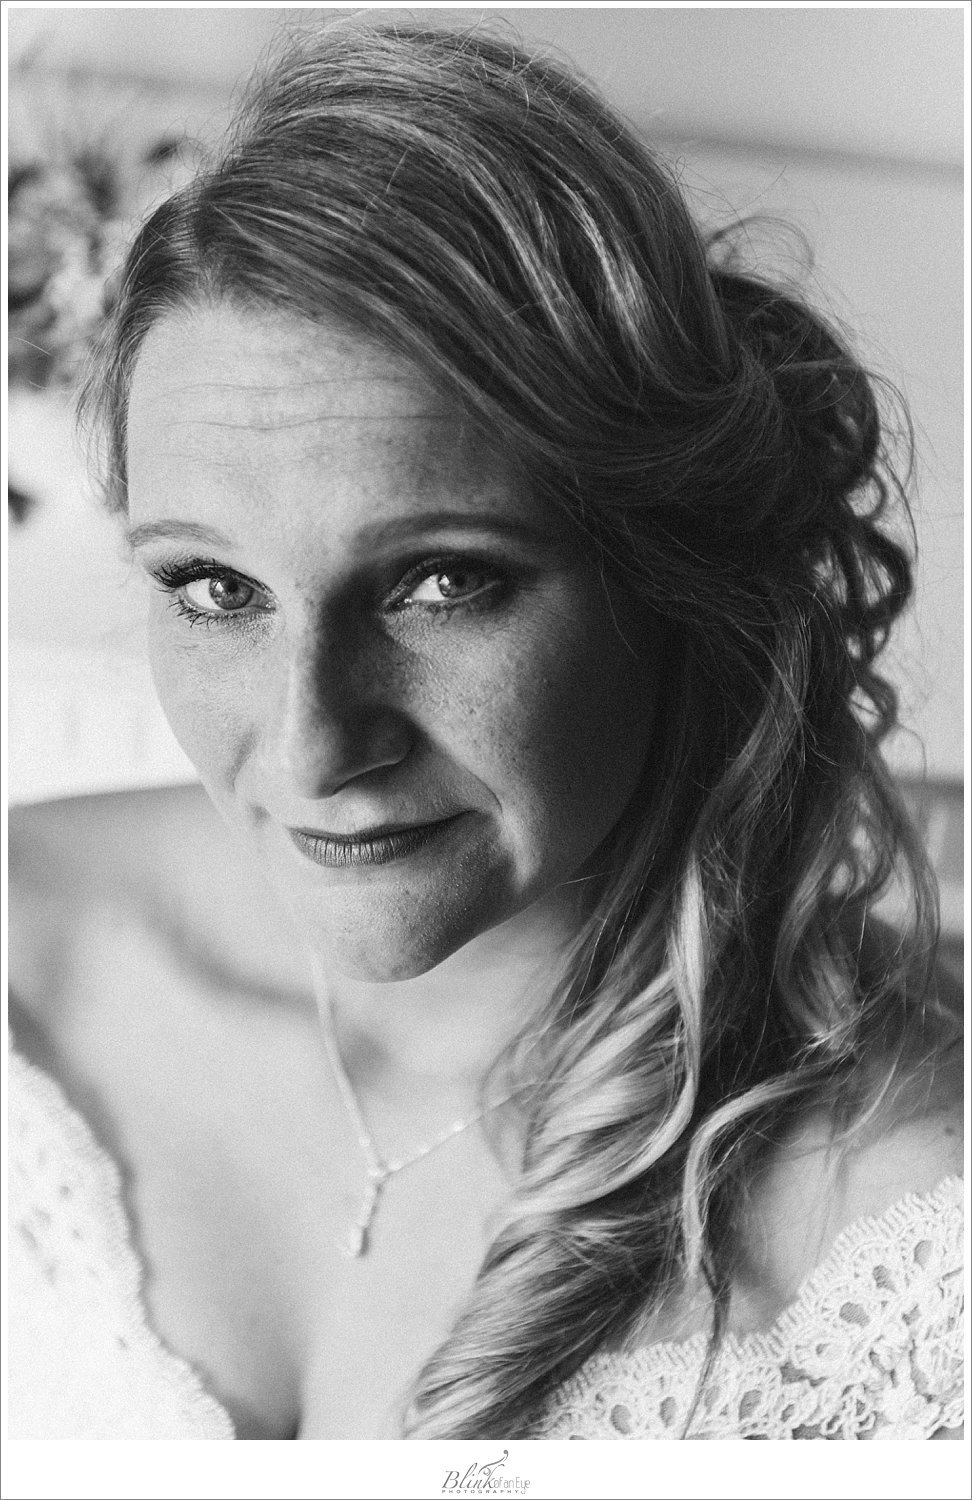 Beautiful bridal portrait of the bride in black and white on her wedding day.